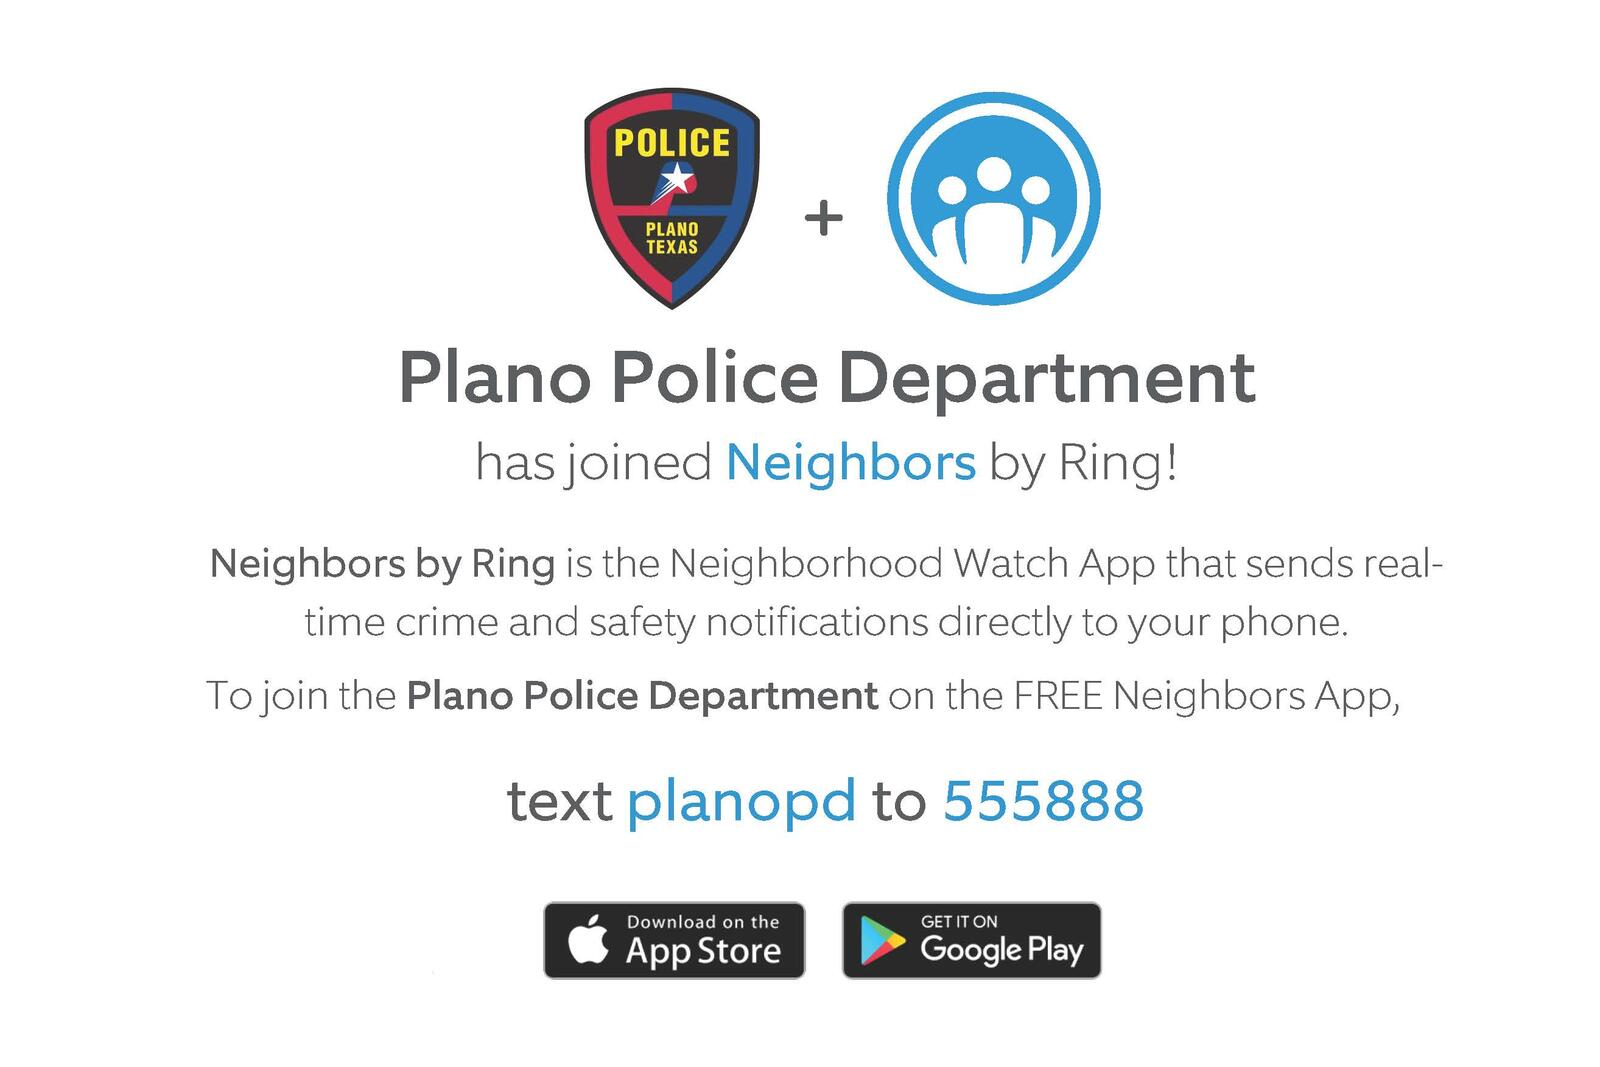 Plano Police have joined the Neighbors App (Plano Police